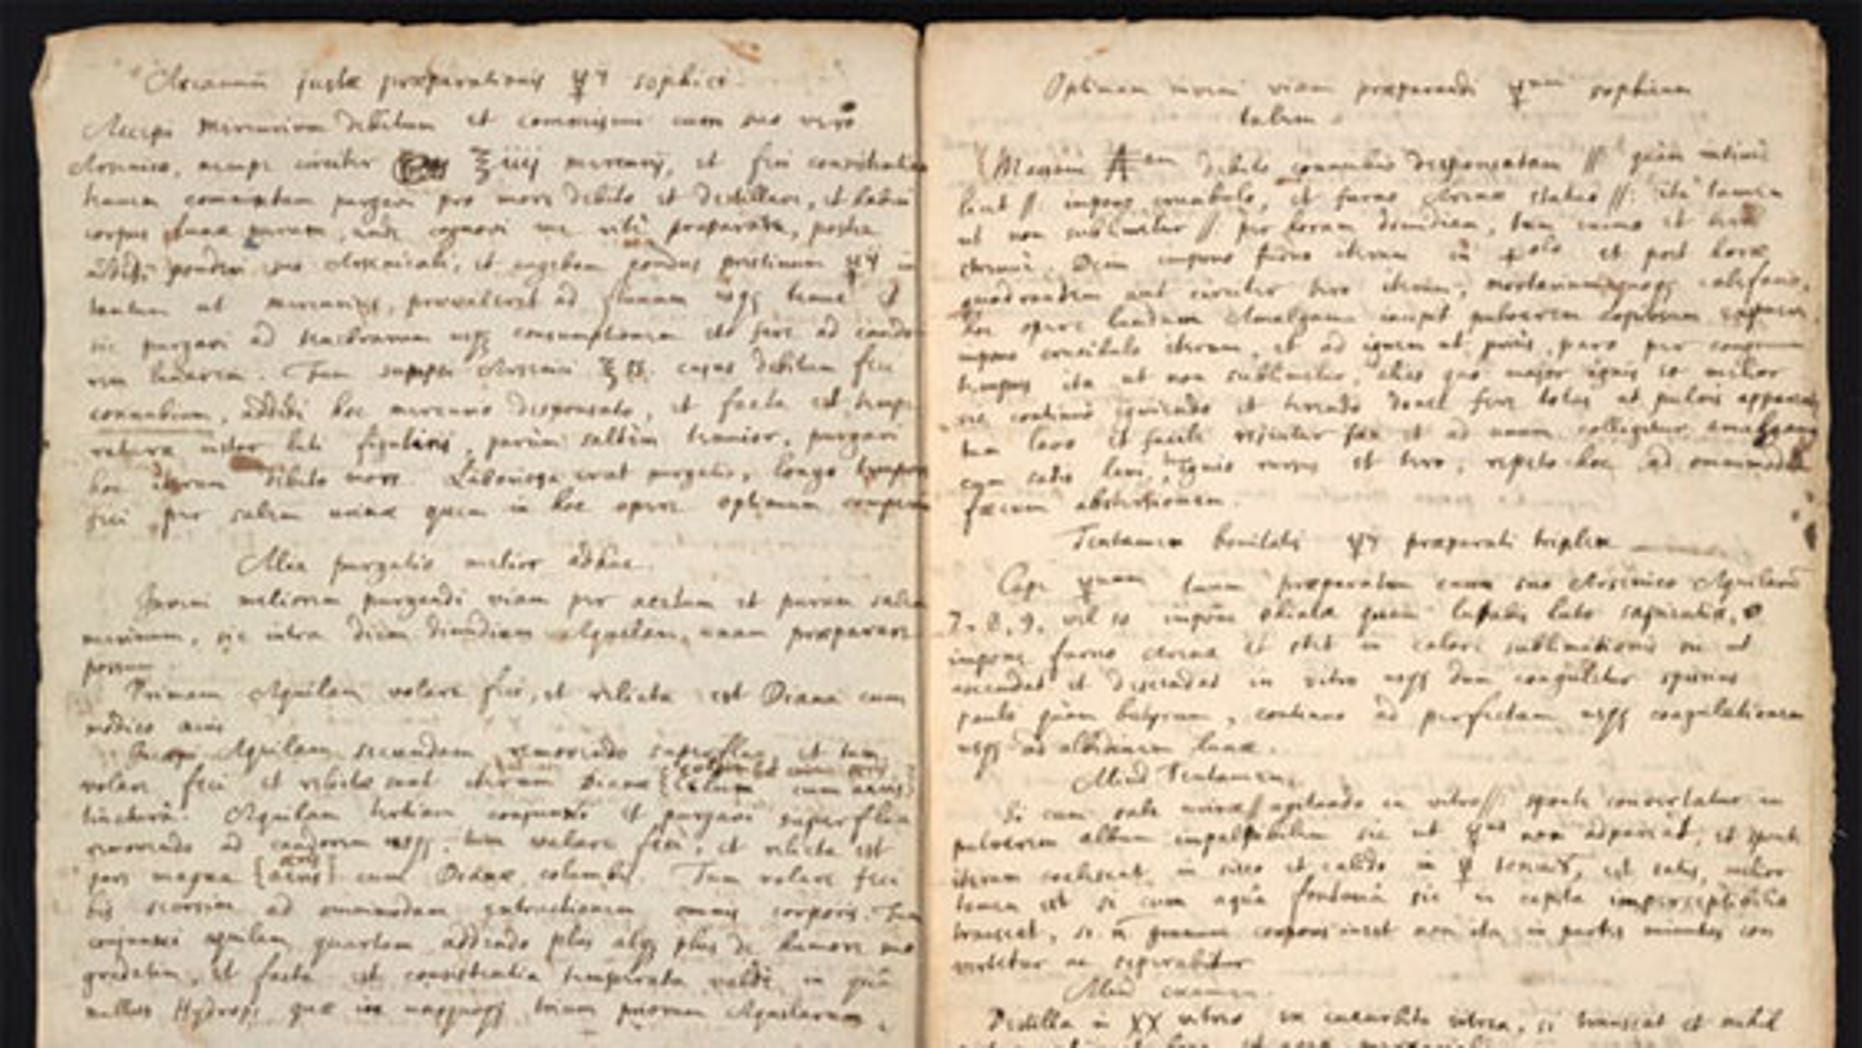 The Isaac Newton manuscript (The Chemical Heritage Foundation).